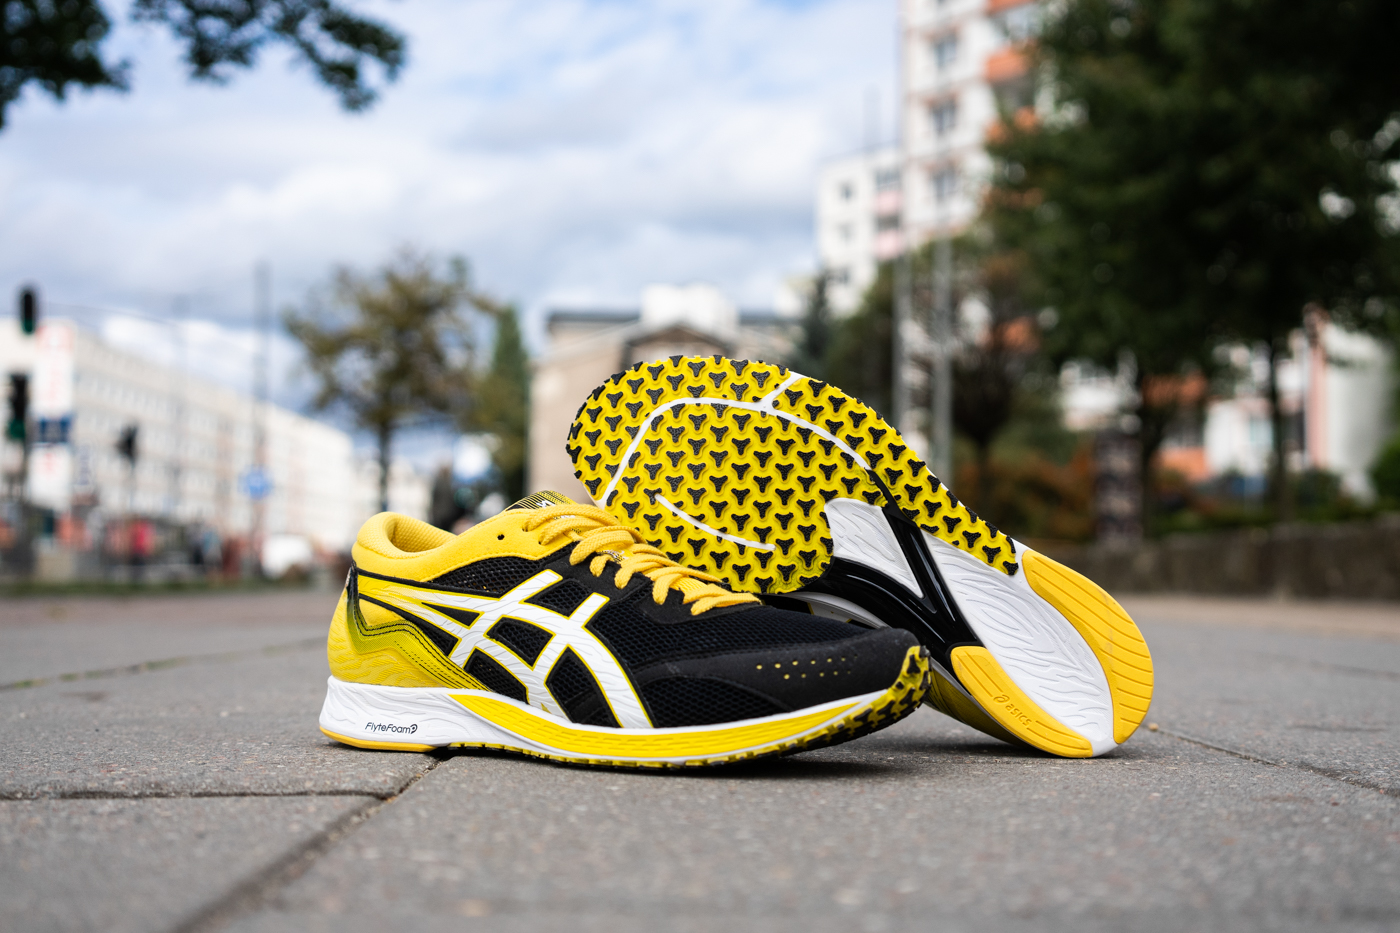 Test butów ASICS Tartheredge